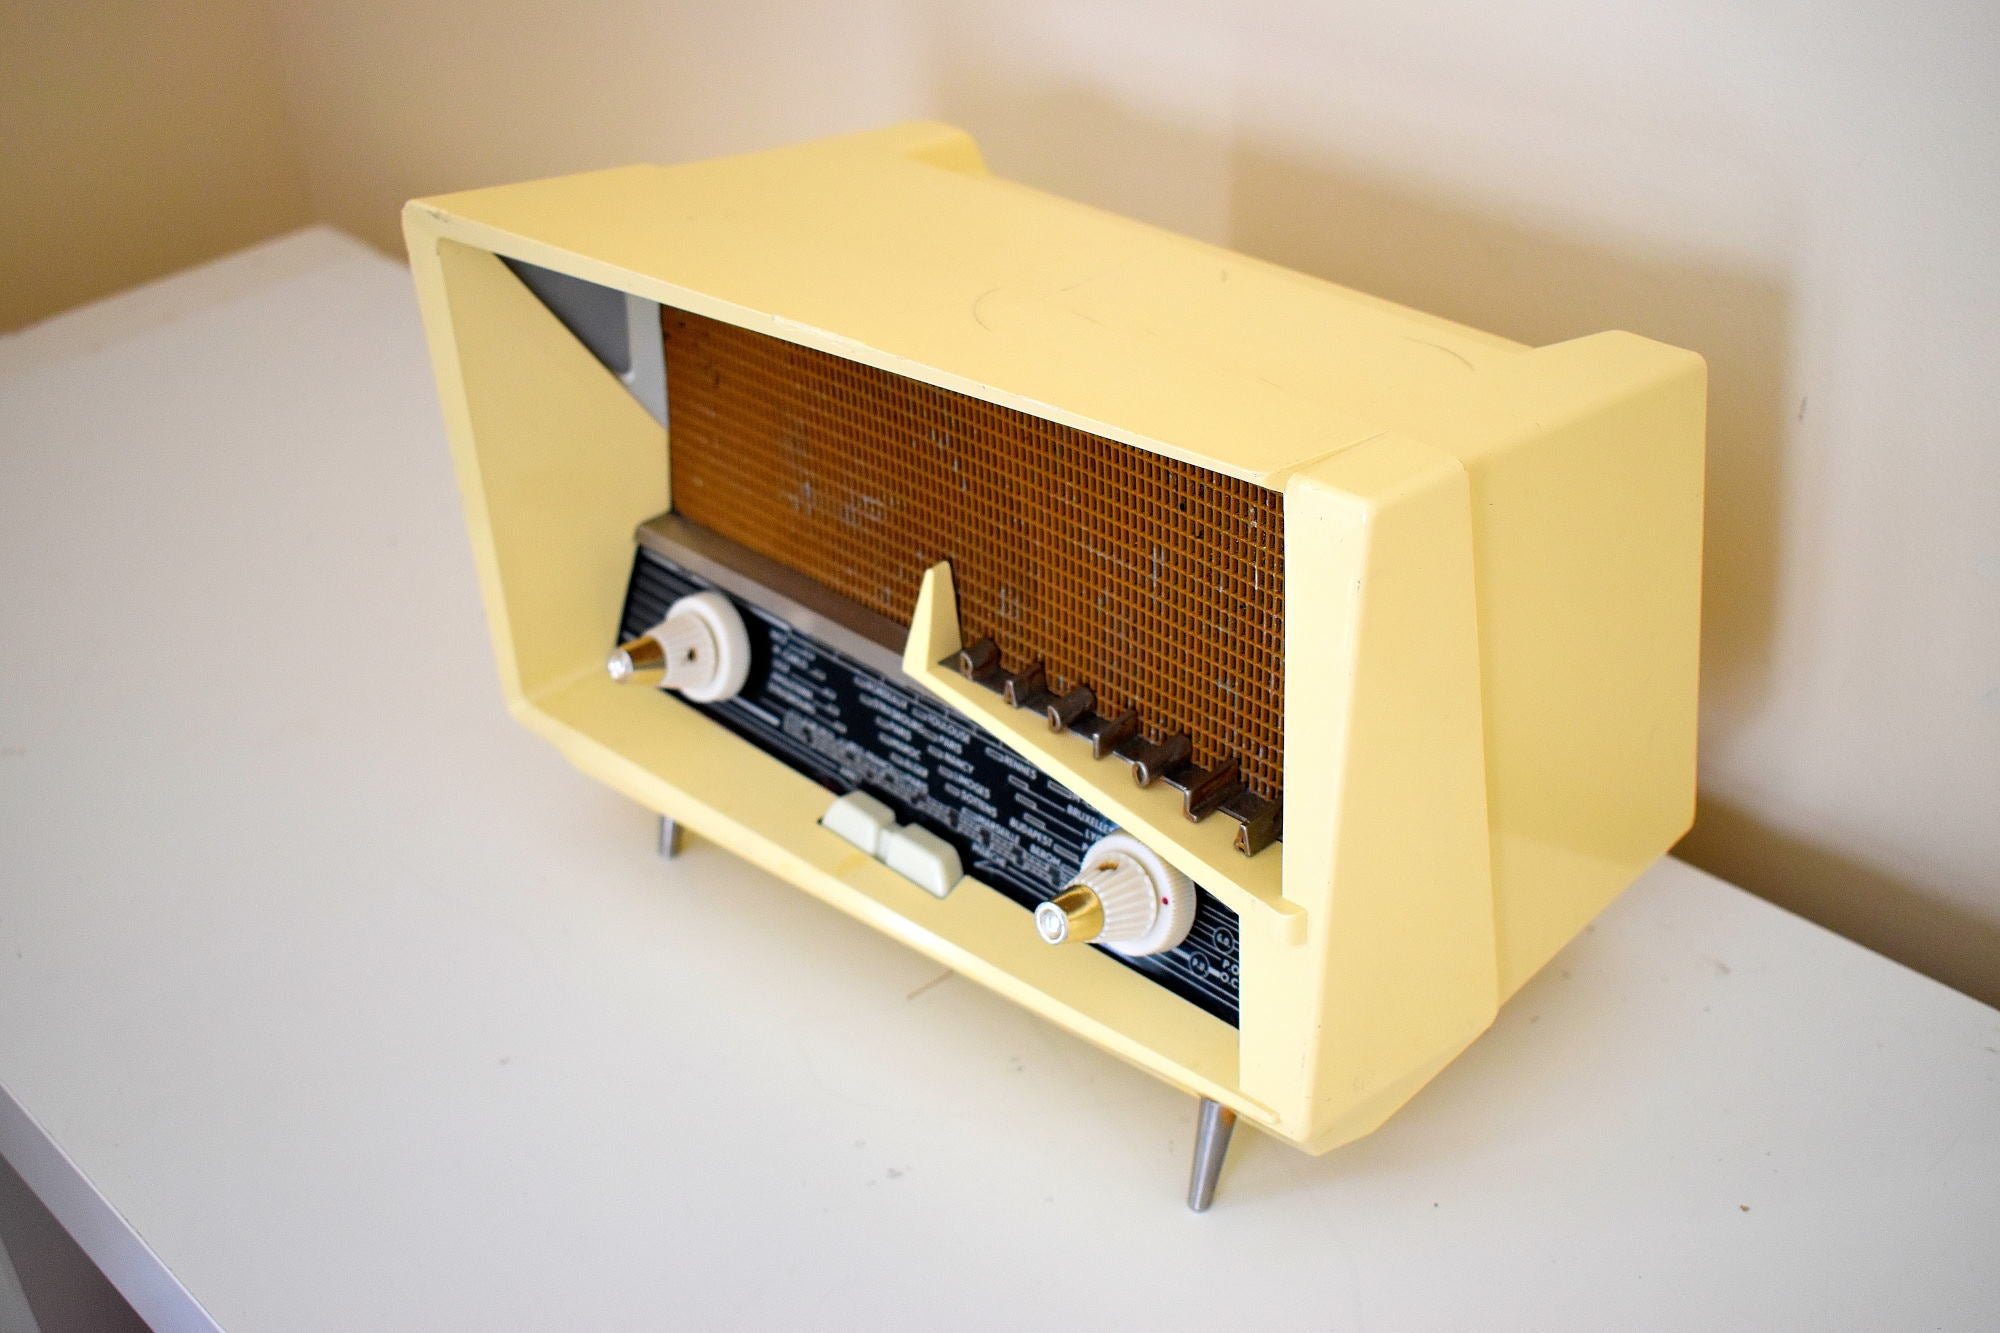 Renown Architect Le Corbusier Designed 1958 Radiola Model 248-A Bakelite AM Shortwave Vacuum Tube Radio Works Great Superlative Design!